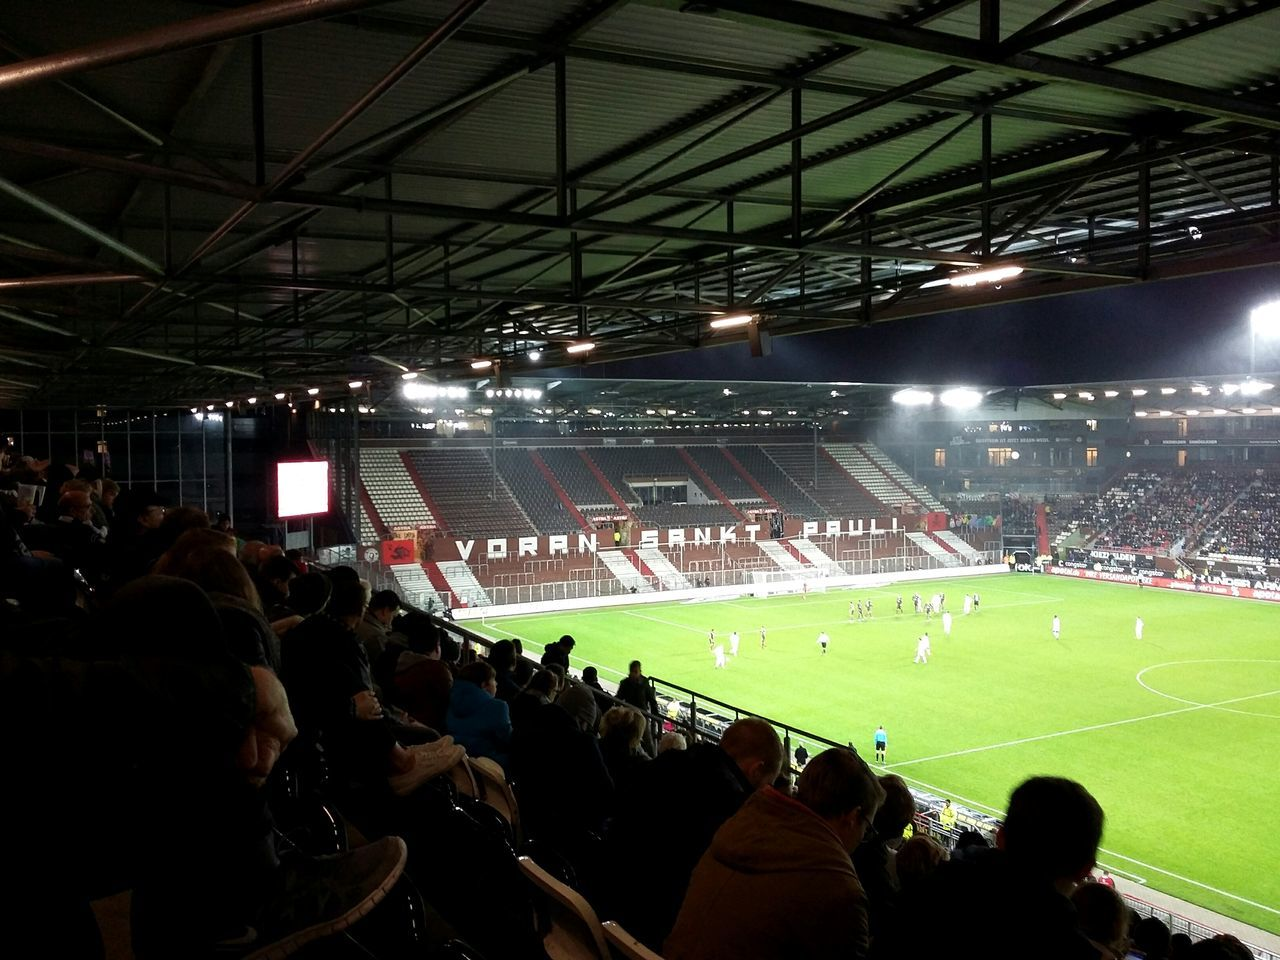 St. Pauli Vs Werder Bremen Friendly at Millerntor-Stadion II. · Hamburg Germany 040 Hh FCSP Fussball Fussball Football Soccer Real Football Stadium Stadion Arena Fans Football Fans People Watching Test Match Green Architecture